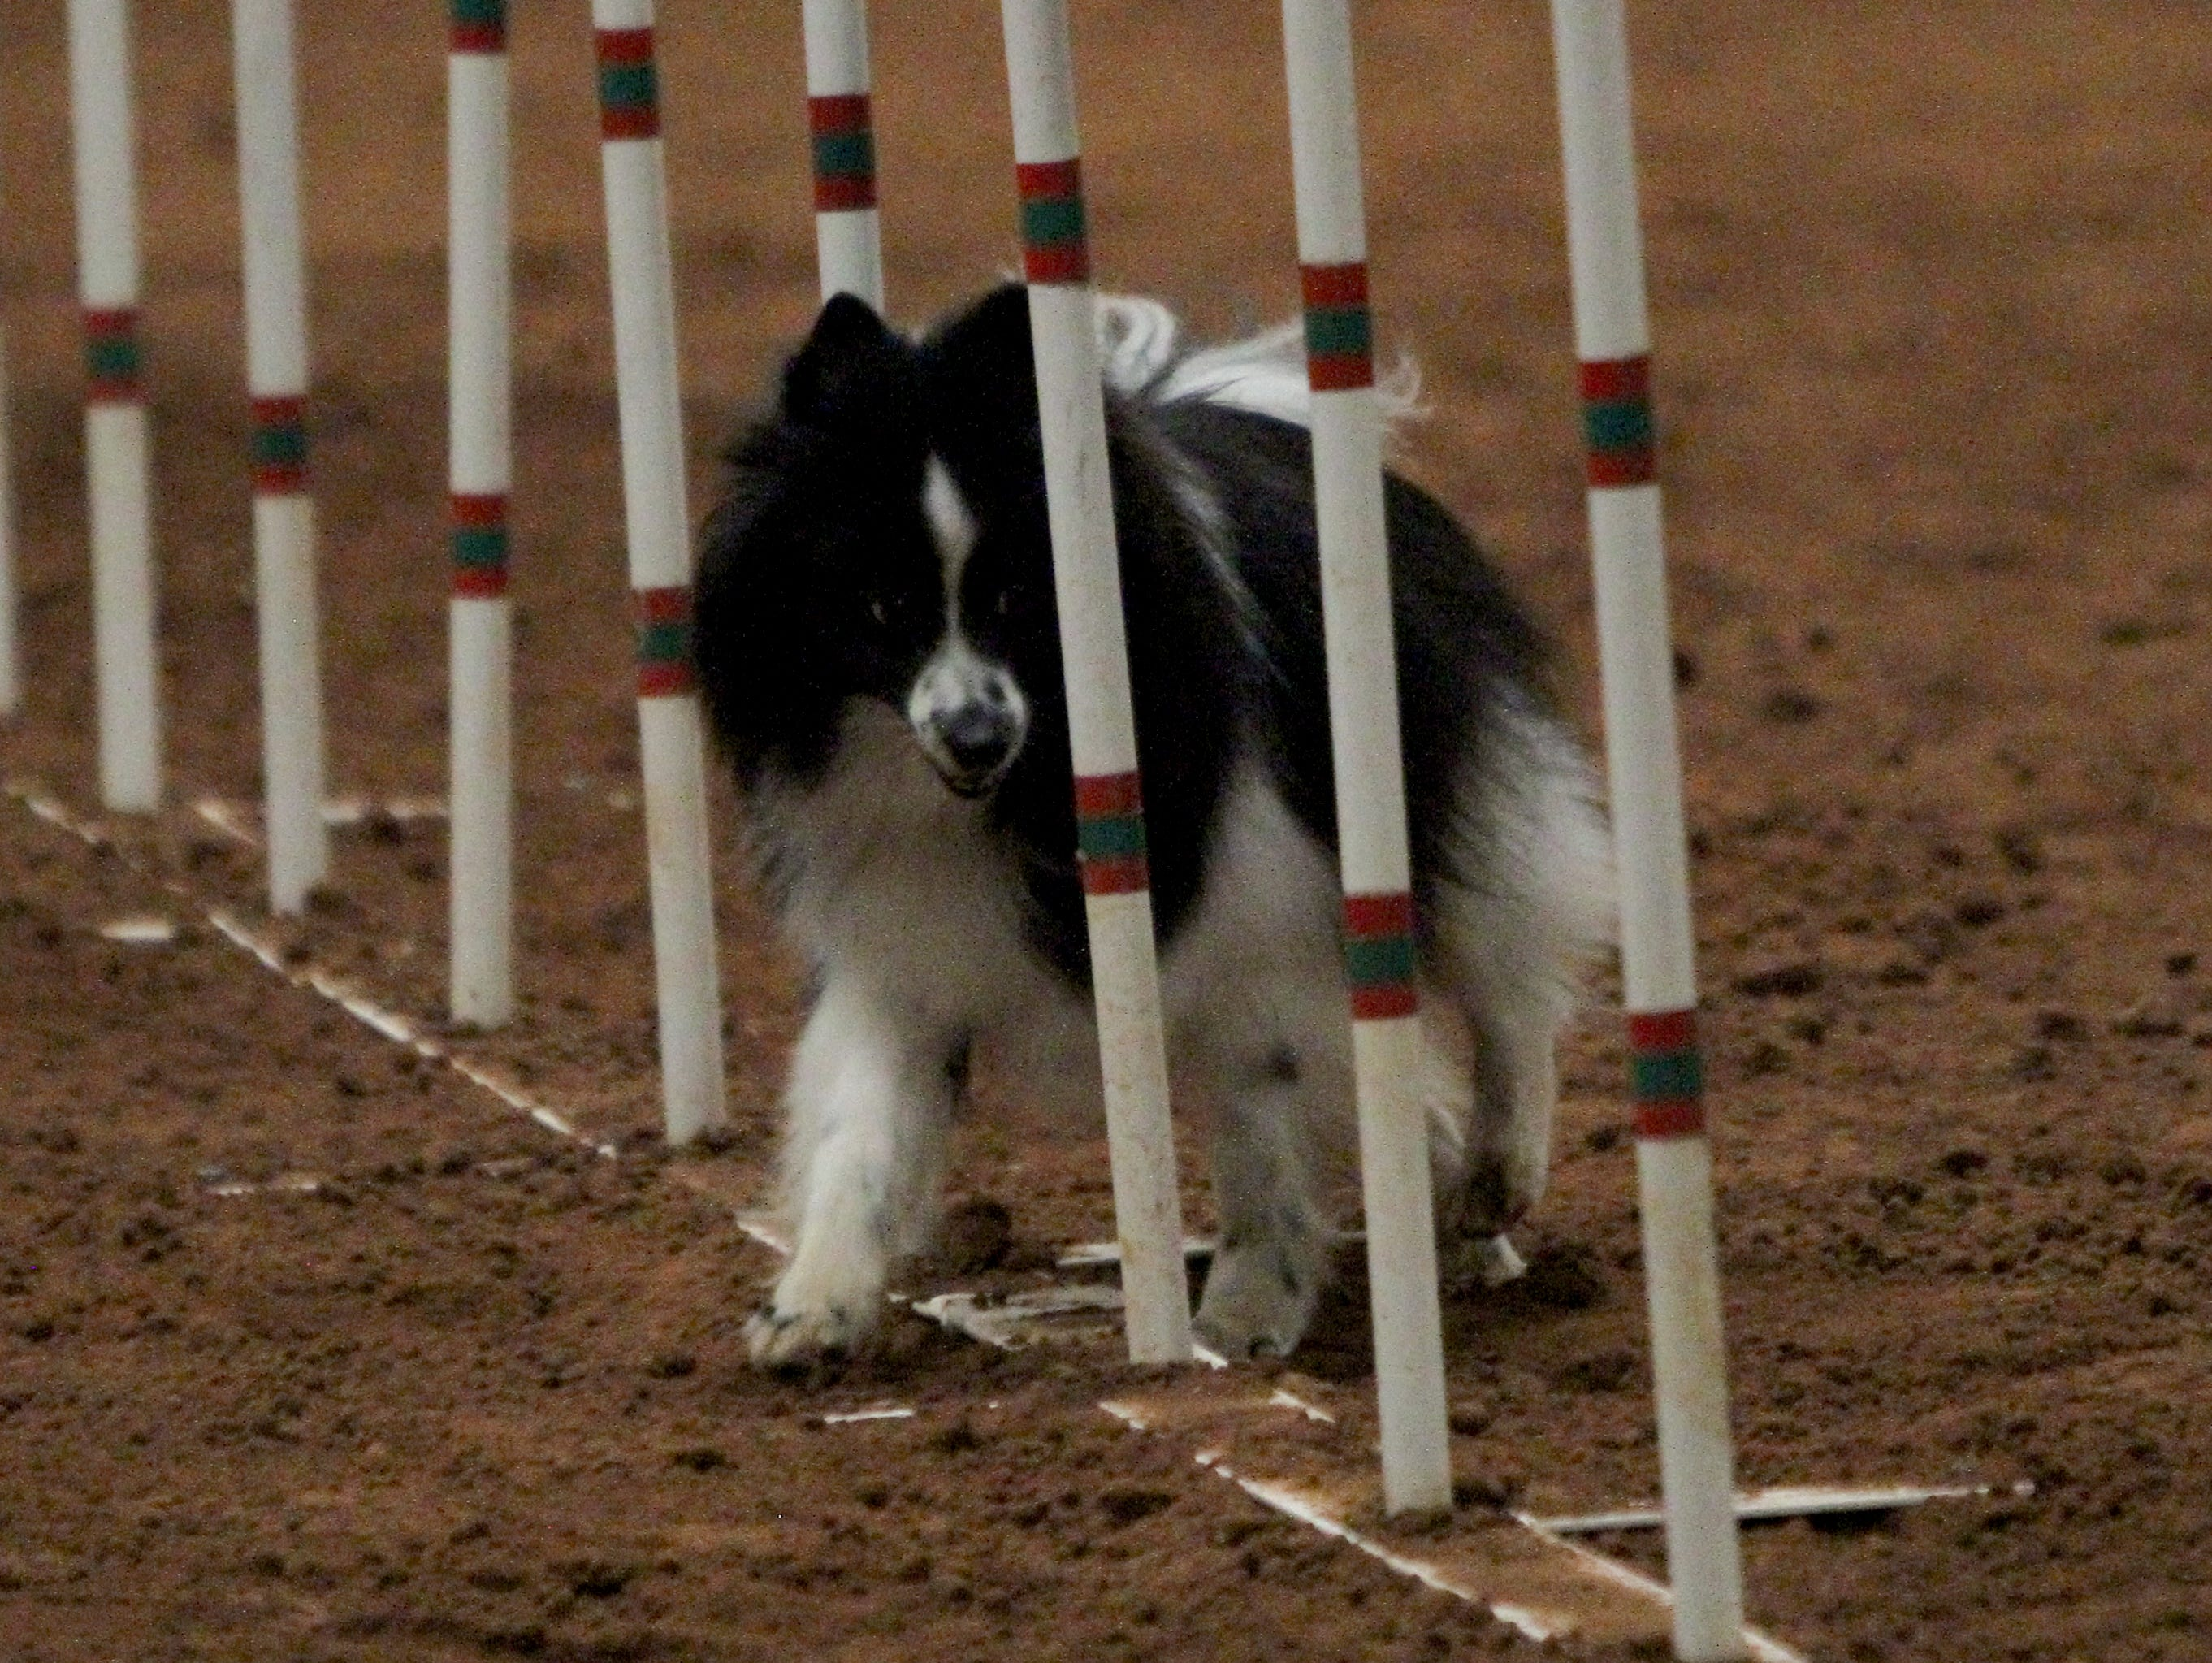 Shelby competes in a agility trial Saturday, April 13, 2019, hotsed by the Obedience Training Club of Wichita Falls in the J.S. Bridwell Agricultural Center.